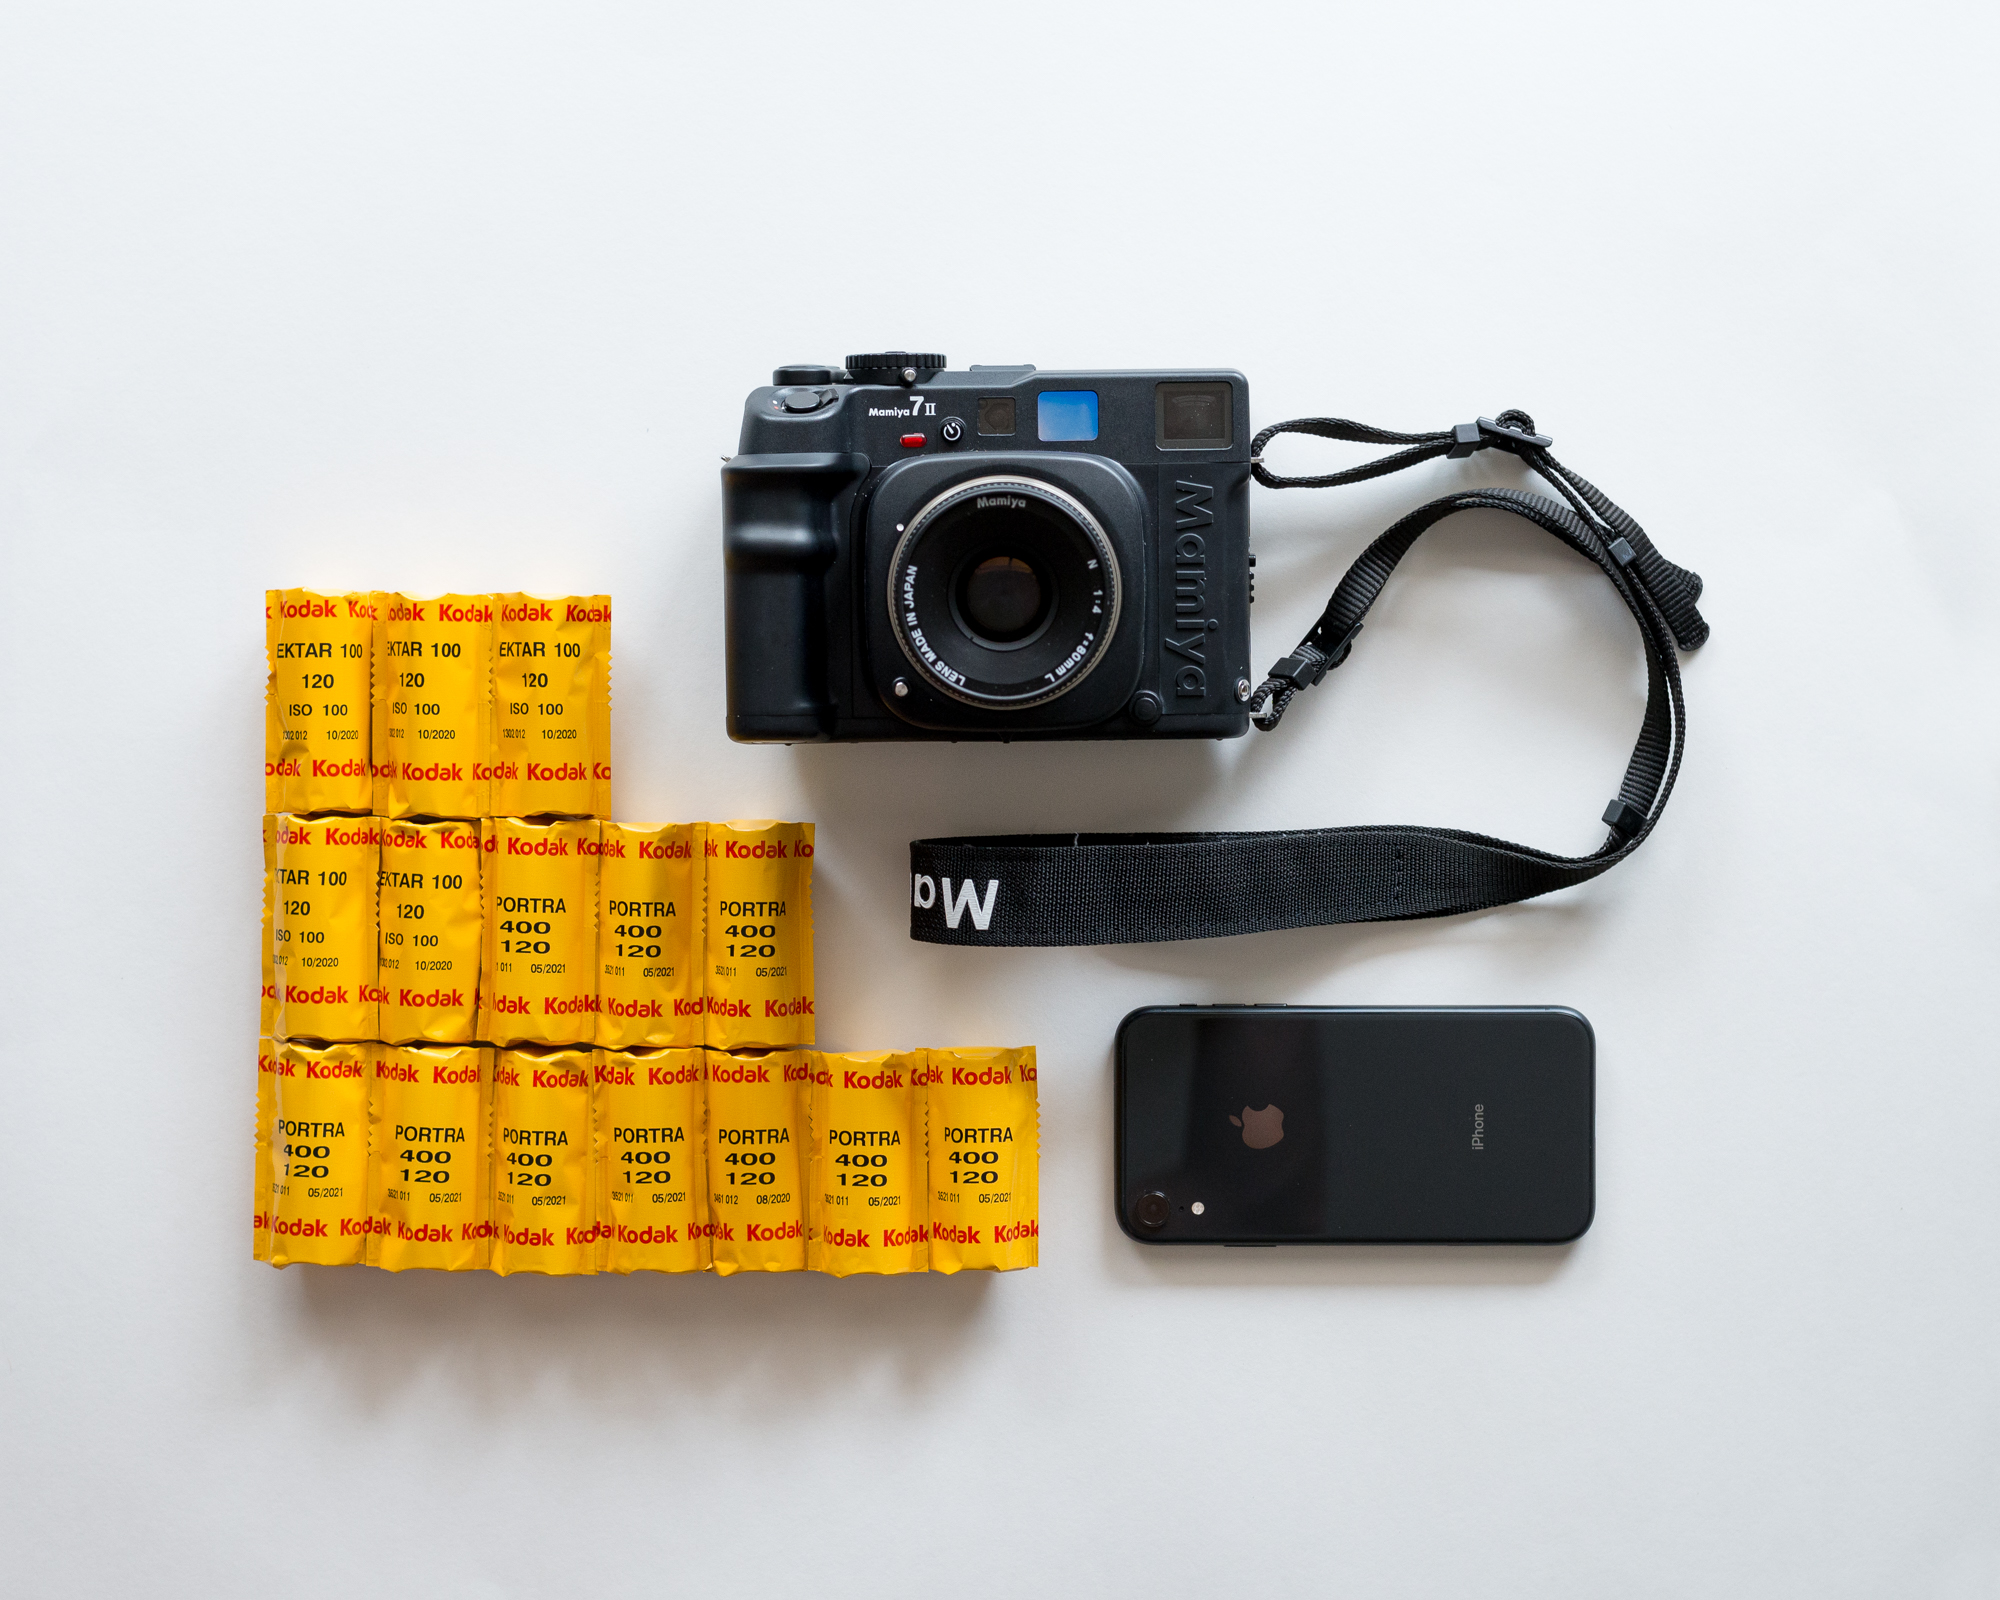 It's never easy deciding which cameras to bring and which to leave behind. How will the rejected cameras take the news? I decided on the Mamiya 7ii and my iPhone, which I believe was the most lightweight and versatile combination for this trip.